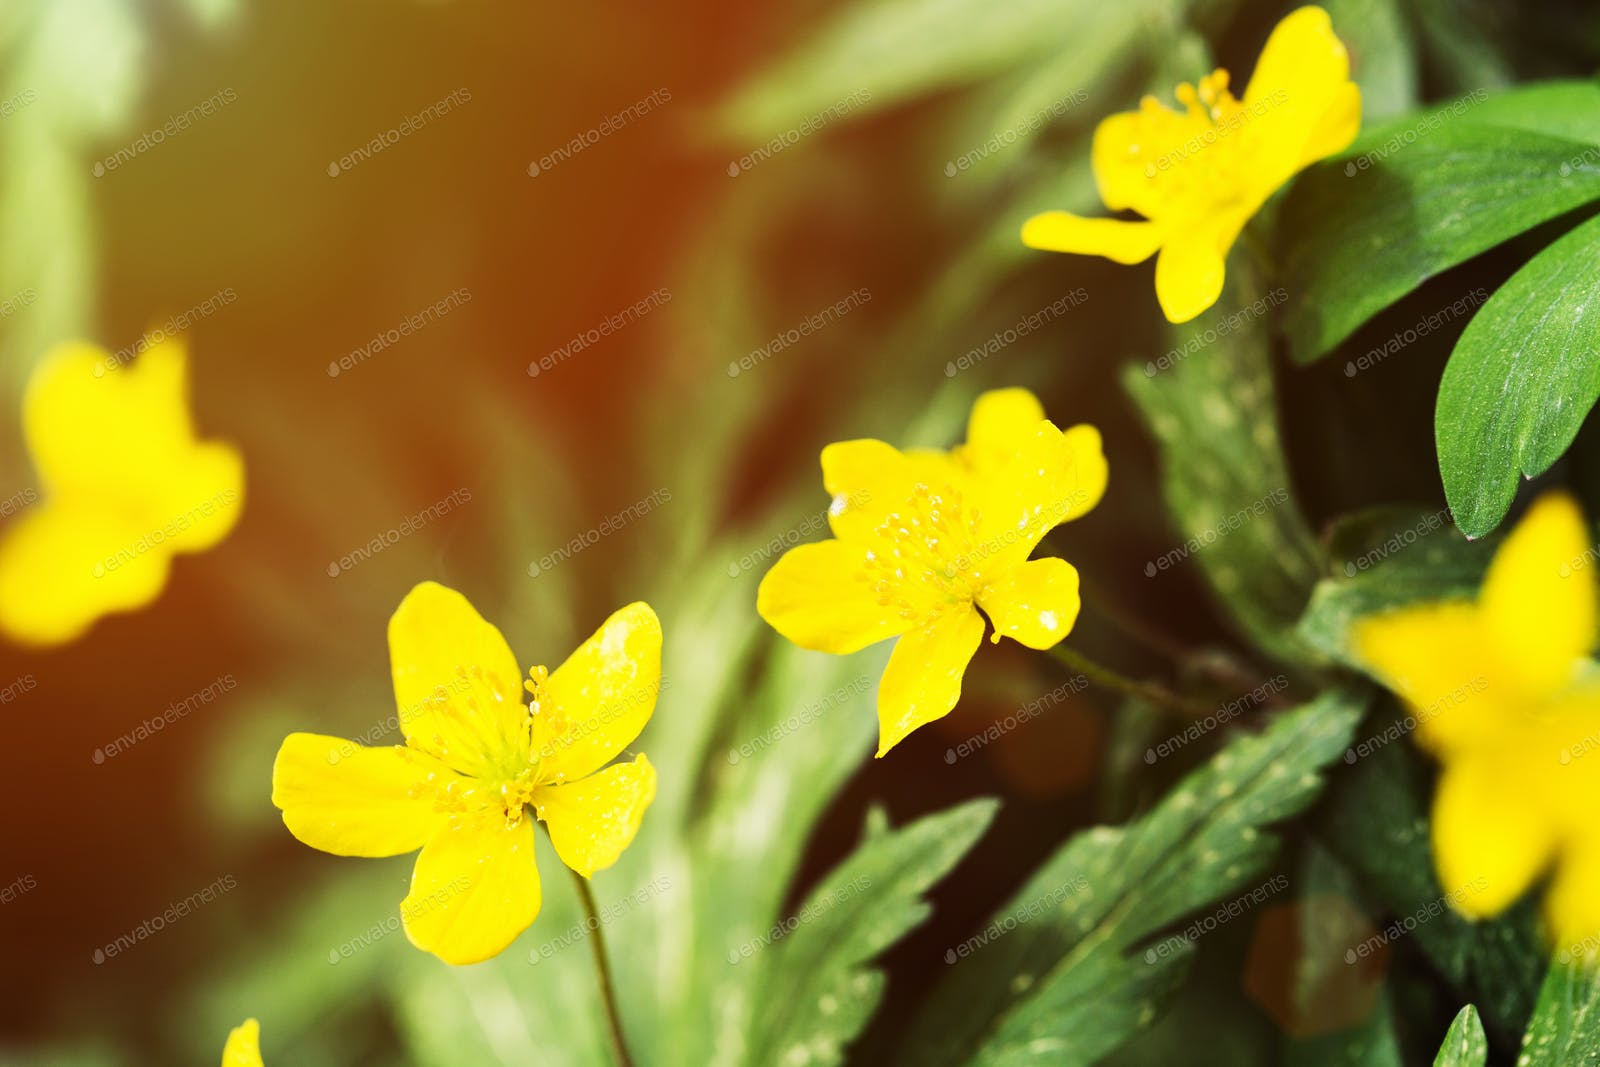 Yellow Flowers In The Wild Photo By Ollinka On Envato Elements